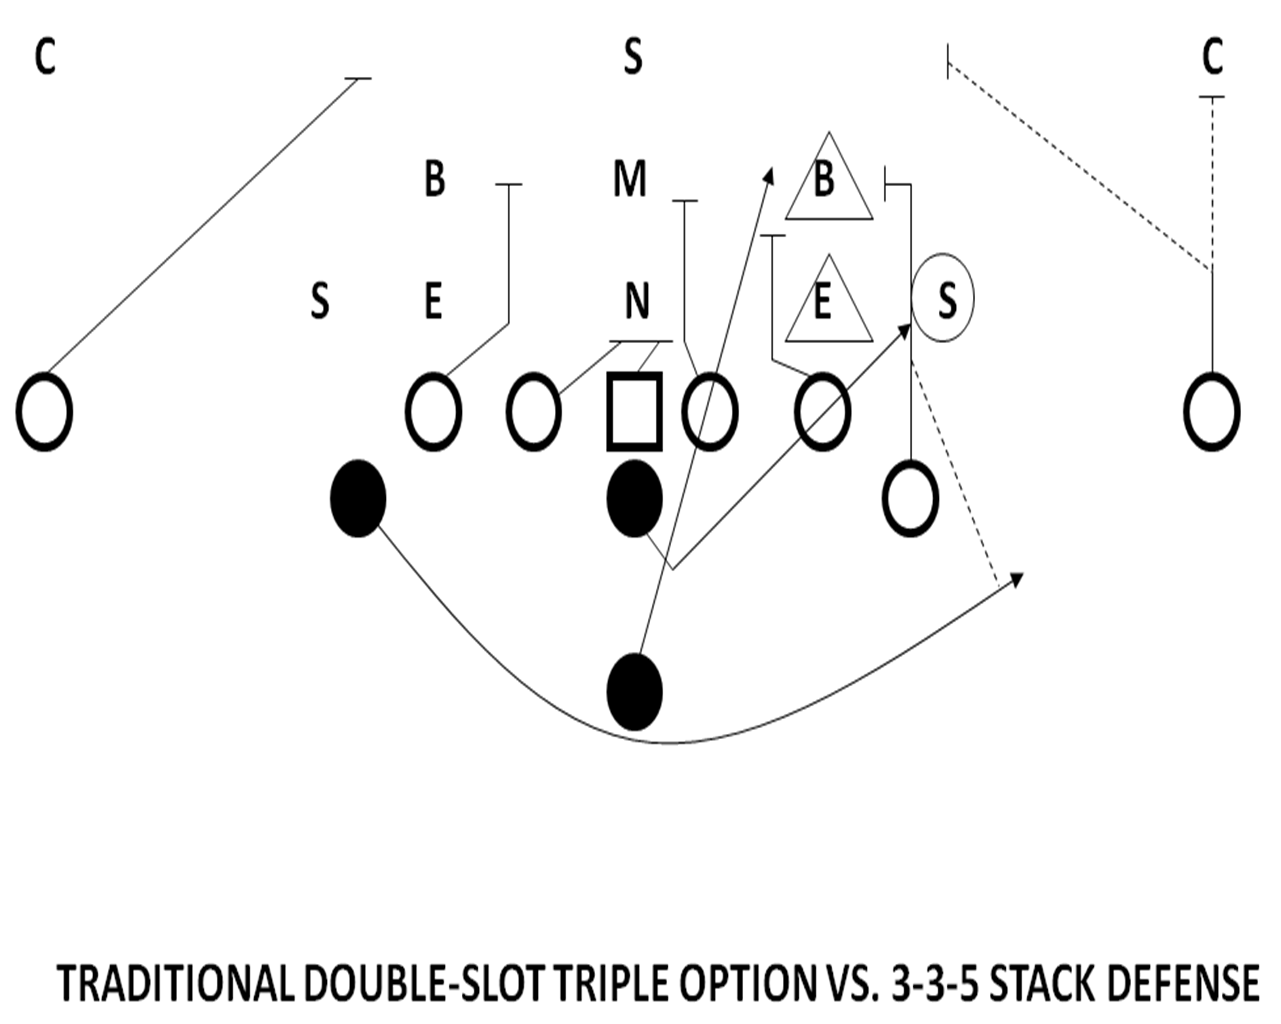 Optioning the 3-3-5 Stack with the Unbalanced Attack